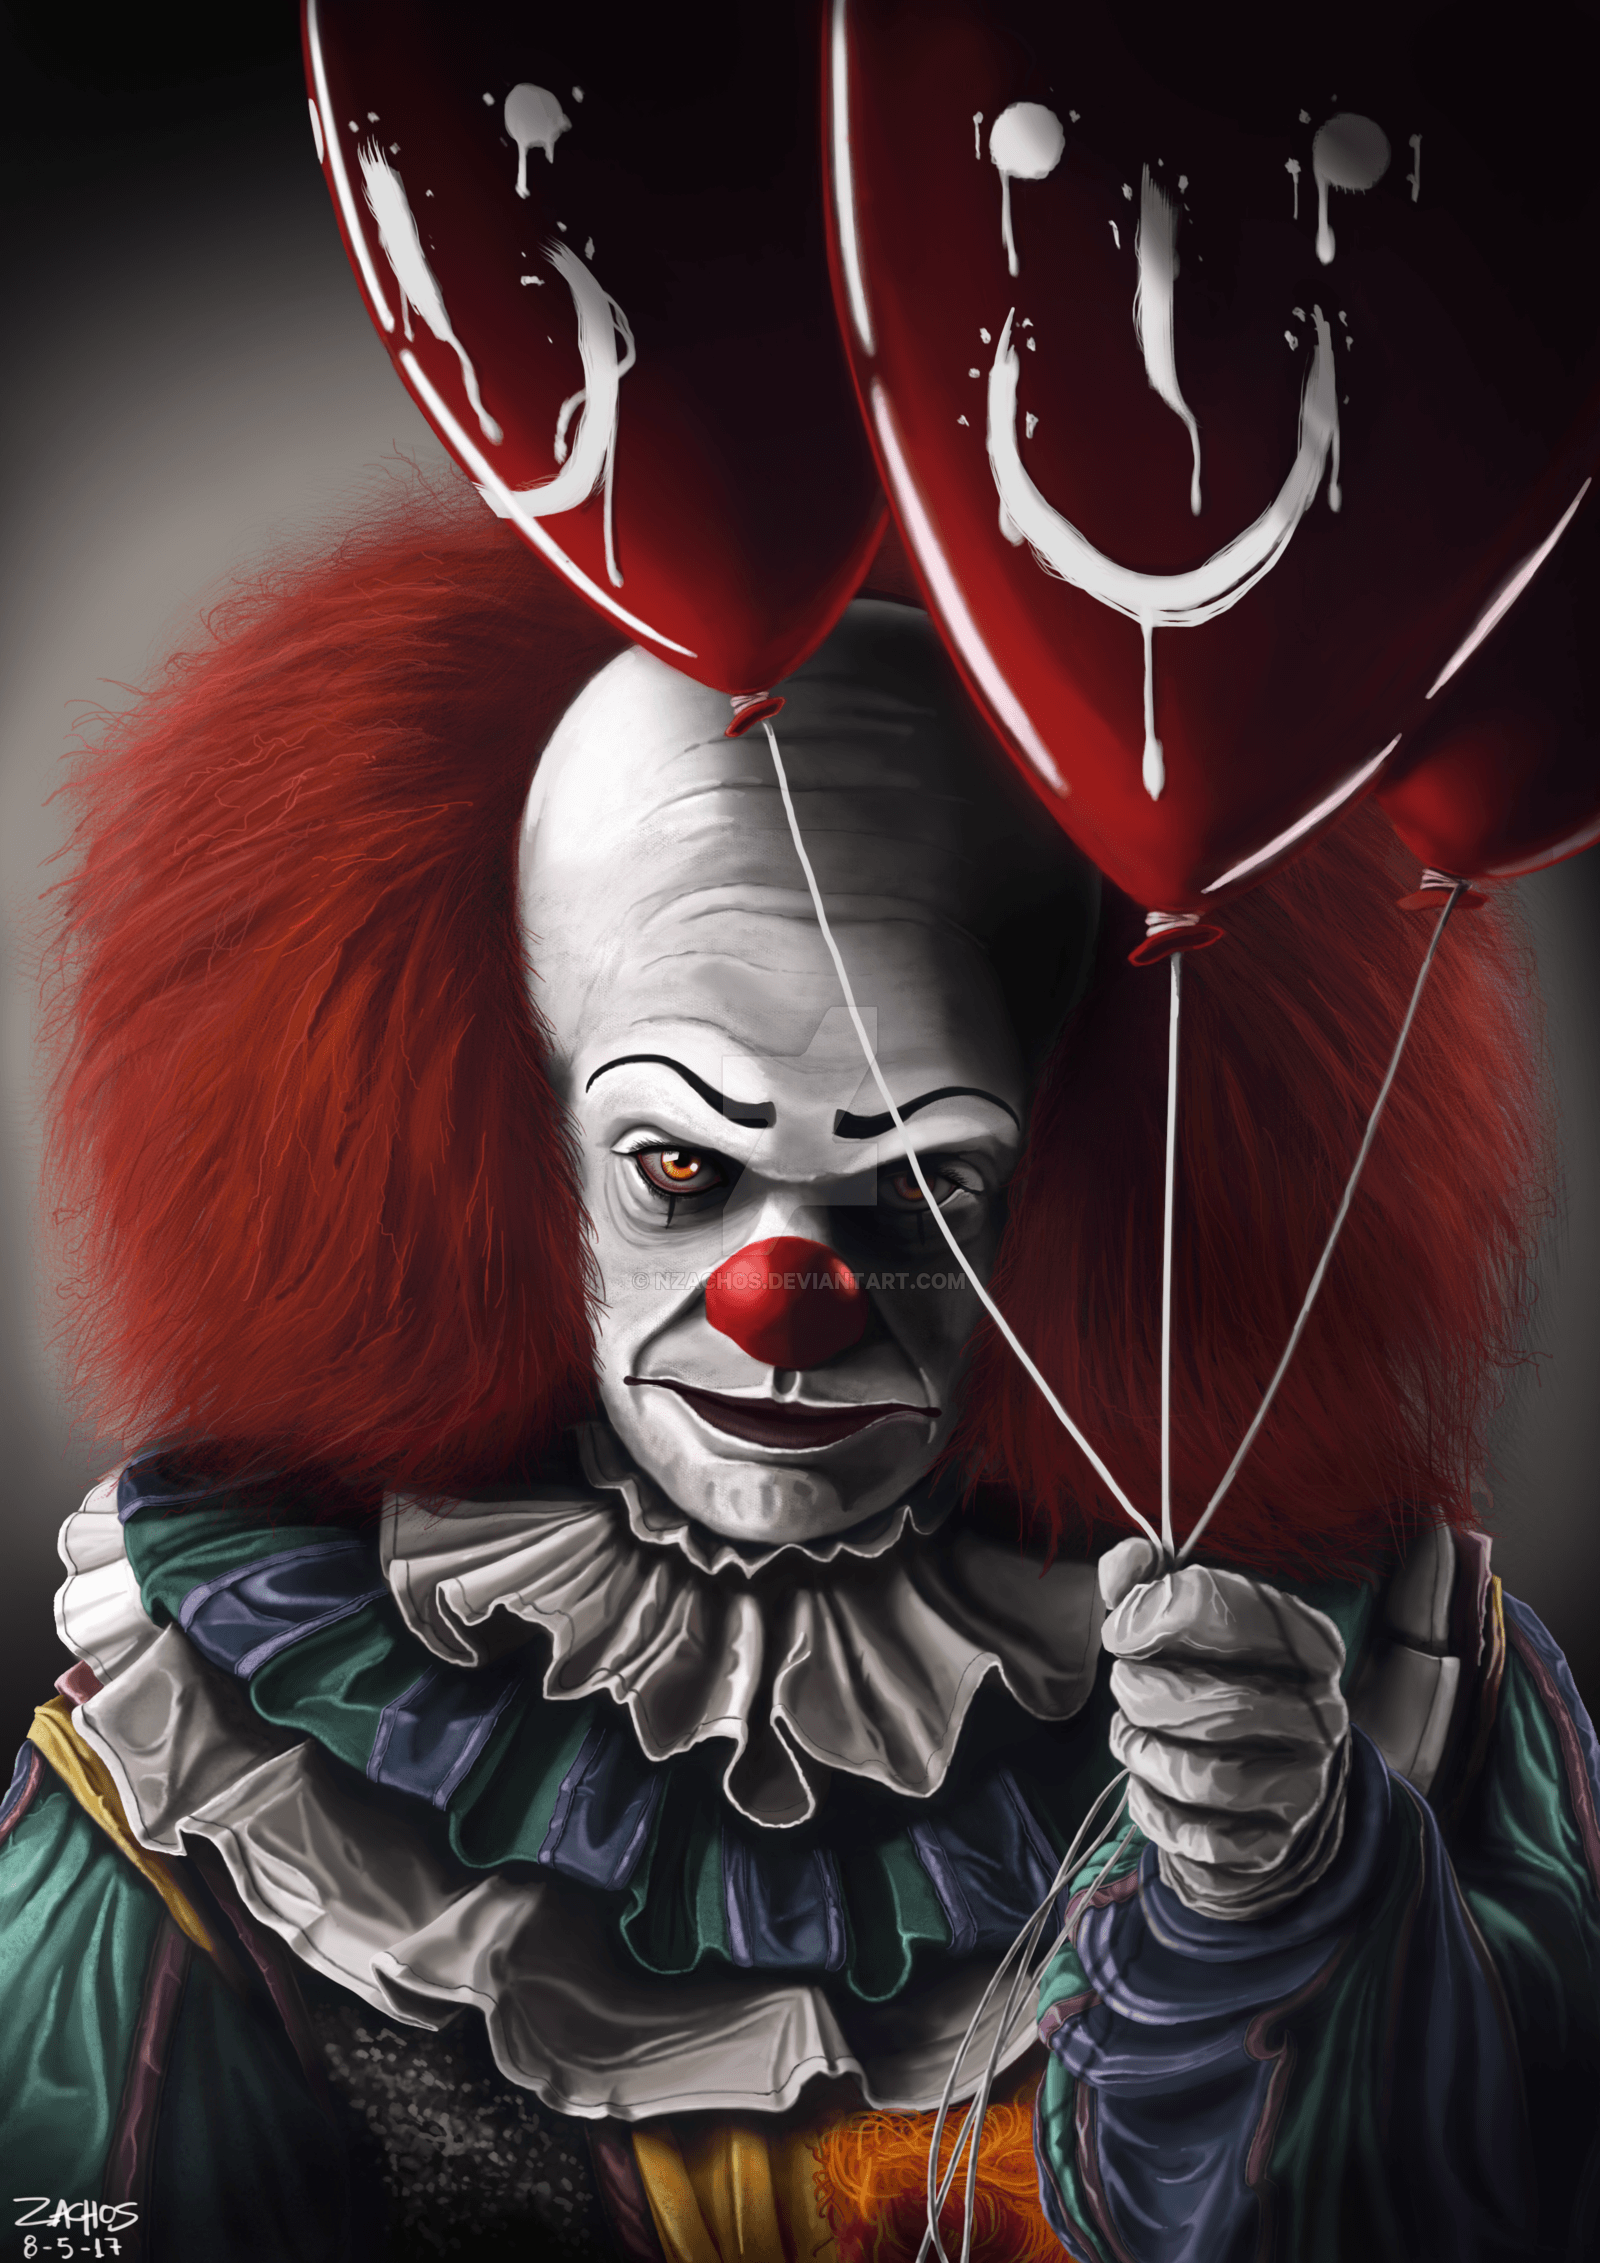 Pennywise The Dancing Clown By NZachos On DeviantArt